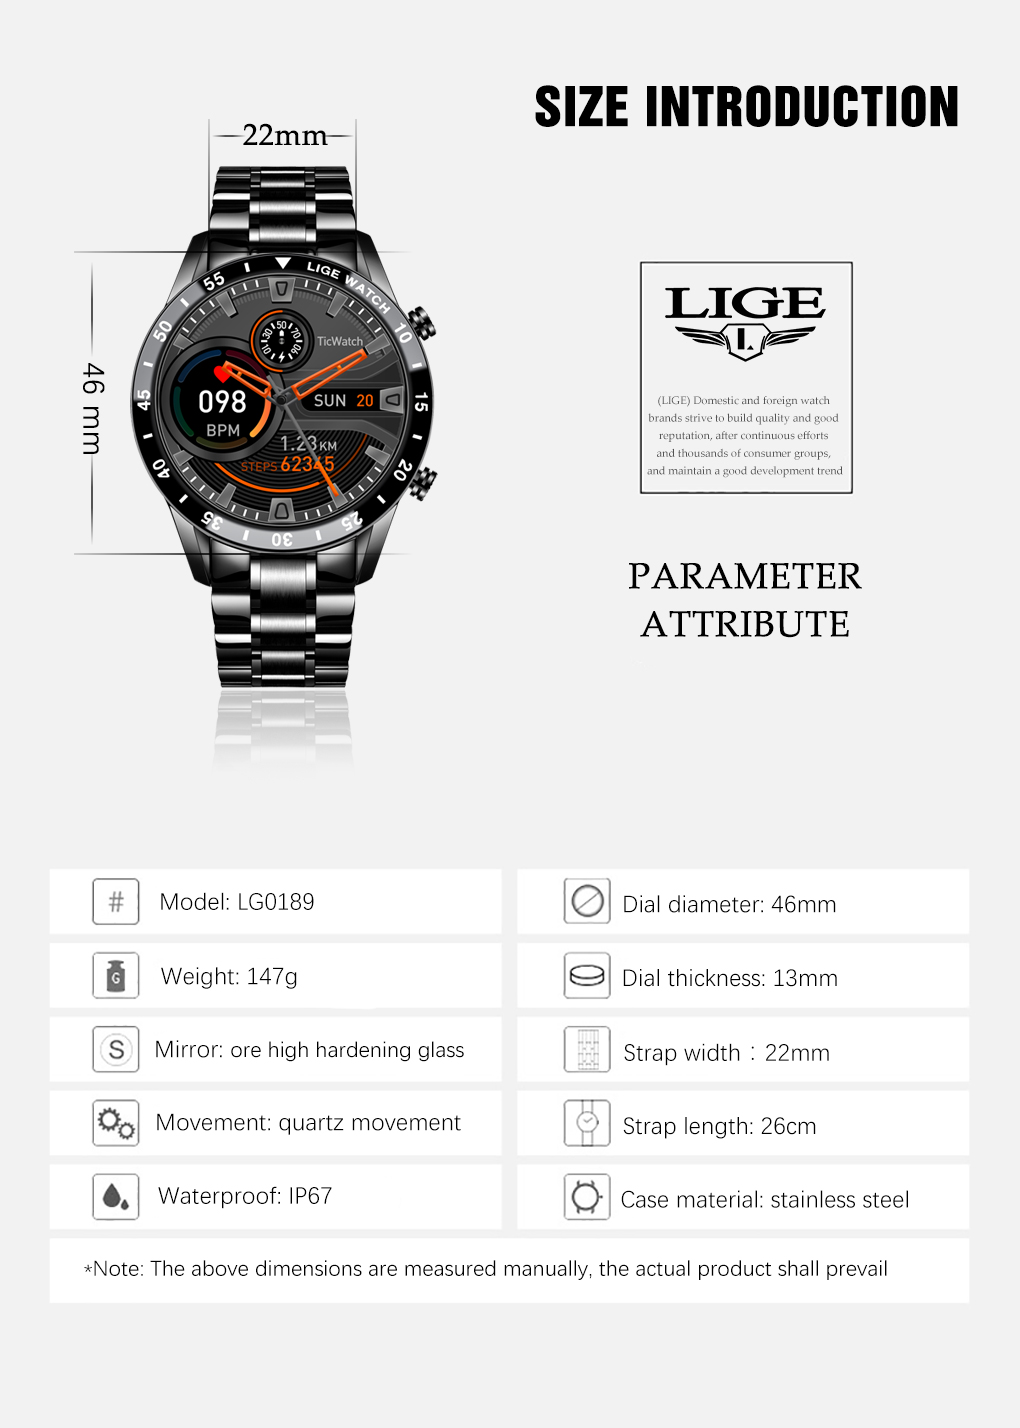 Hca6cf818a2e641a1a4aaceb608a0e4b17 LIGE 2021 New Smart Watch Men Full Touch Screen Sports Fitness Watch Waterproof Bluetooth Call For Android iOS Smartwatch Mens